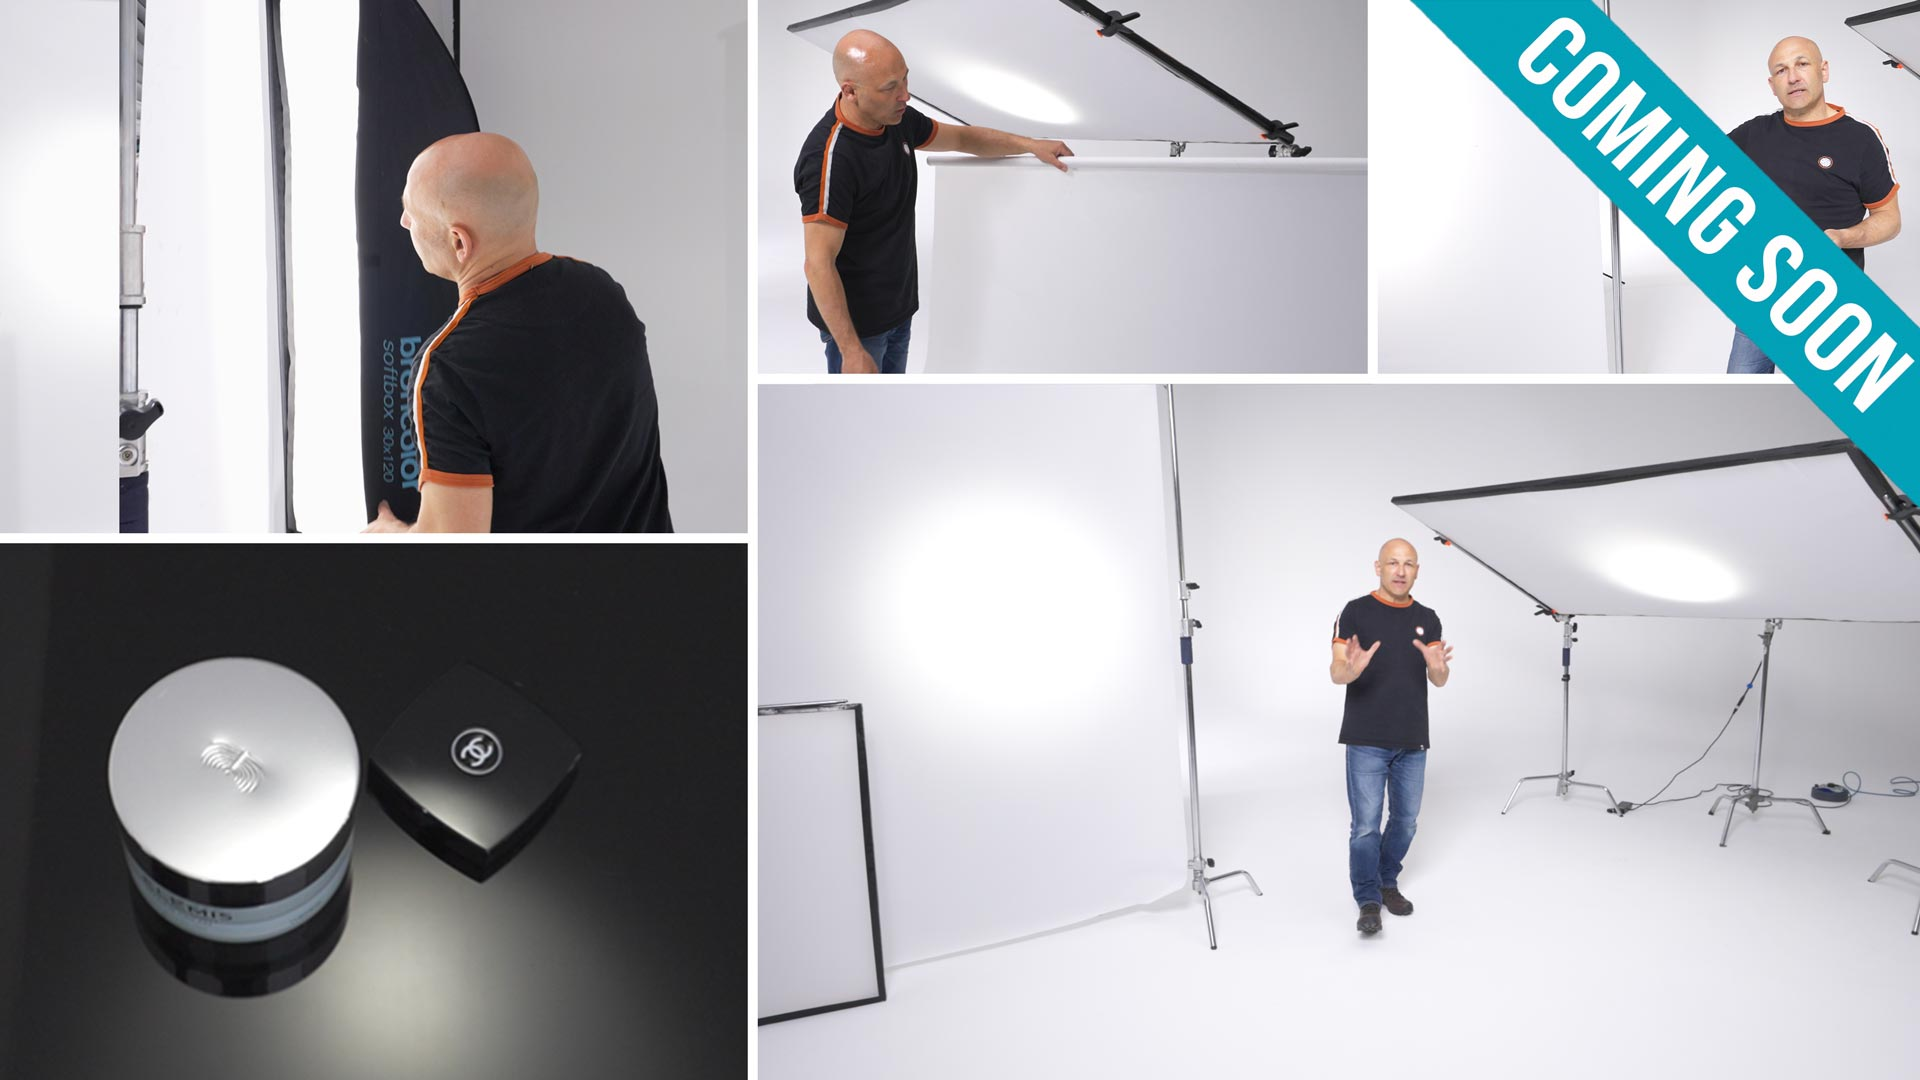 Gradient Lighting For Product Photography